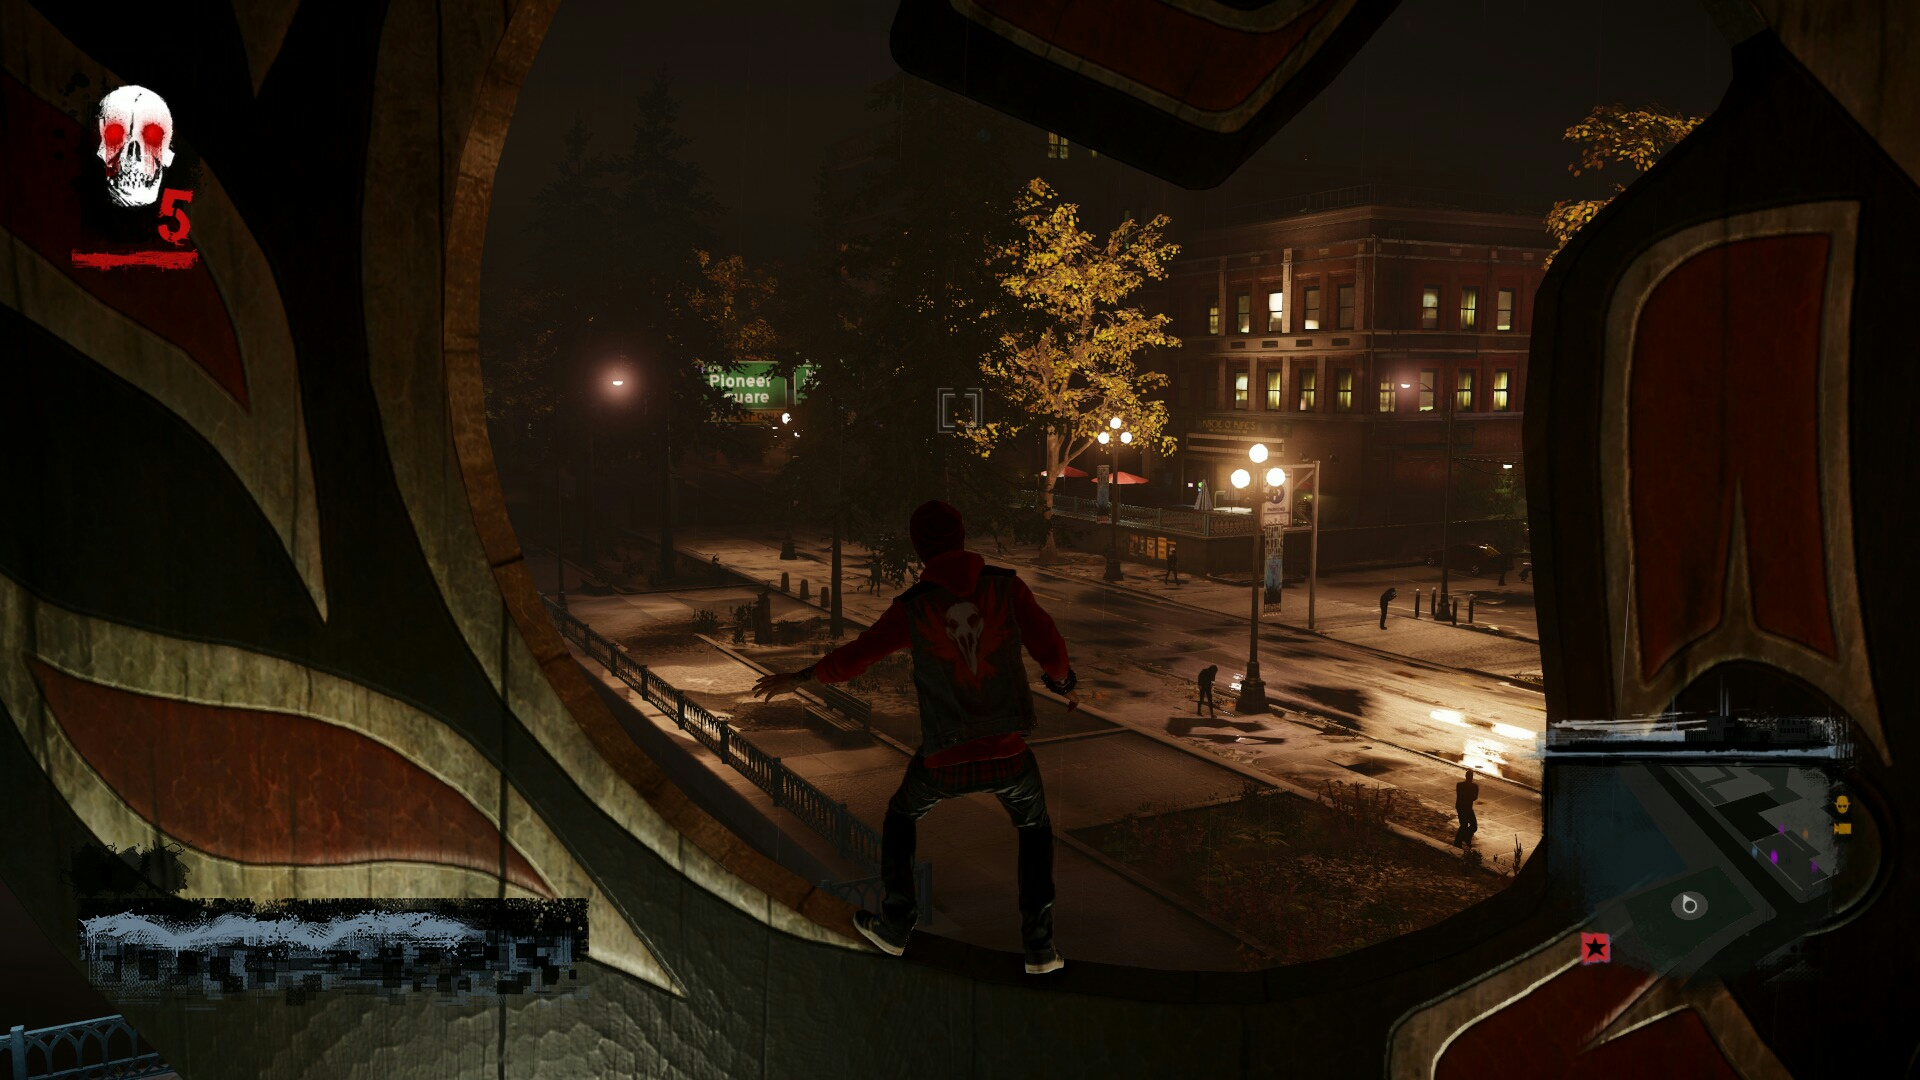 infamous-ss-night-5